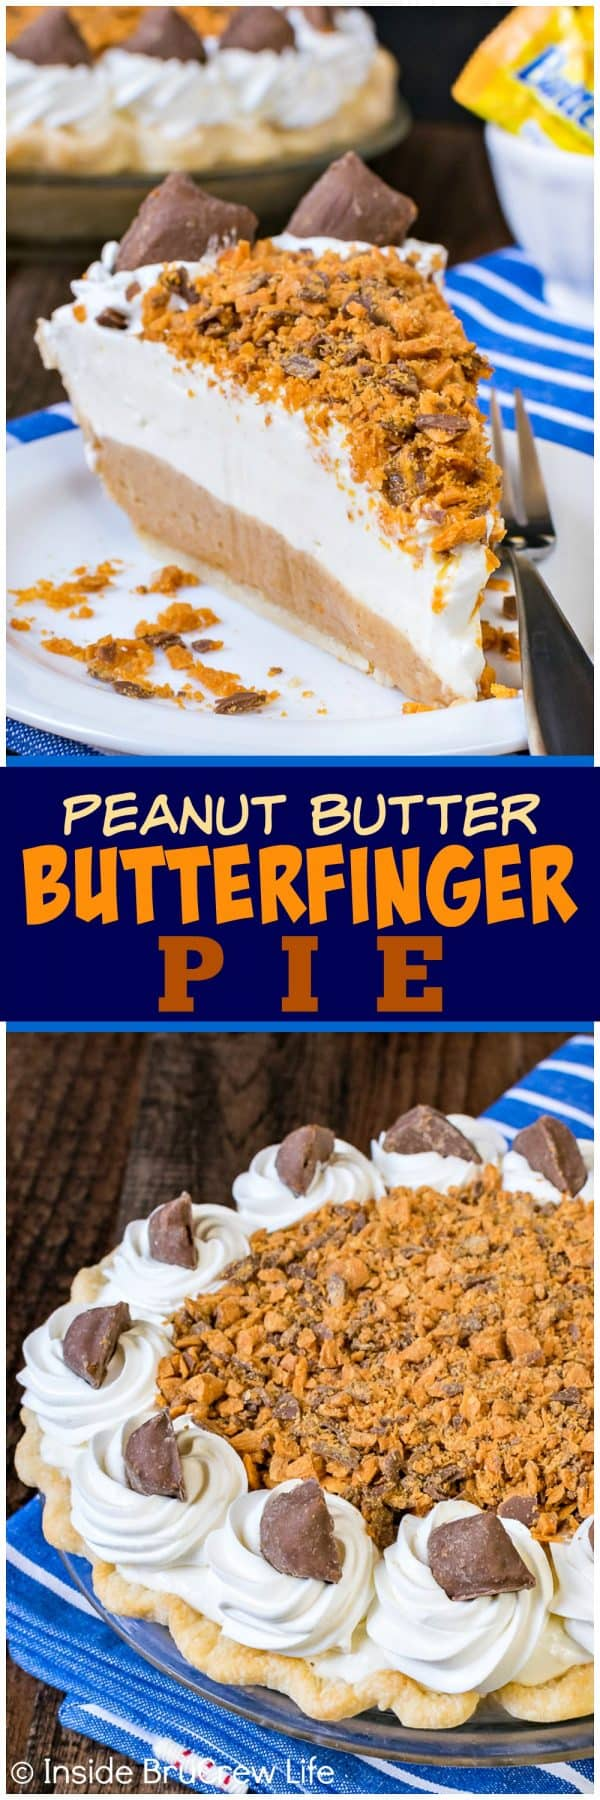 Peanut Butter Butterfinger Pie - creamy cheesecake and crunchy candy bar layers create an amazing pie that won't last. Easy recipe to make for the holidays. #pie #butterfinger #holiday #peanutbutter